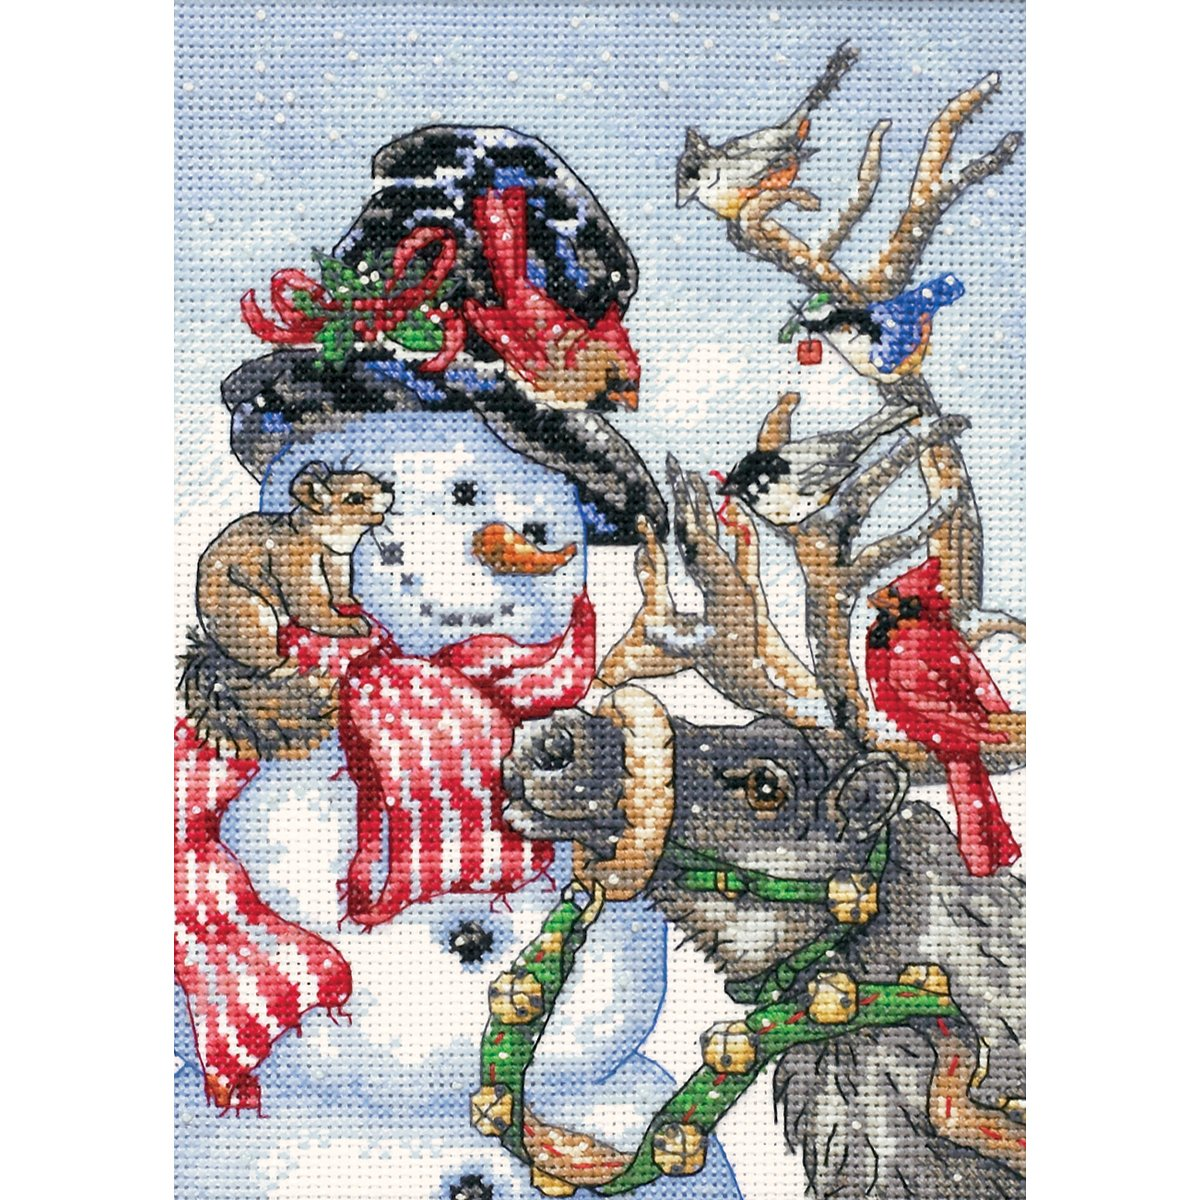 Dimensions 08824 Needlecrafts Counted Cross Stitch, Snowman and Reindeer